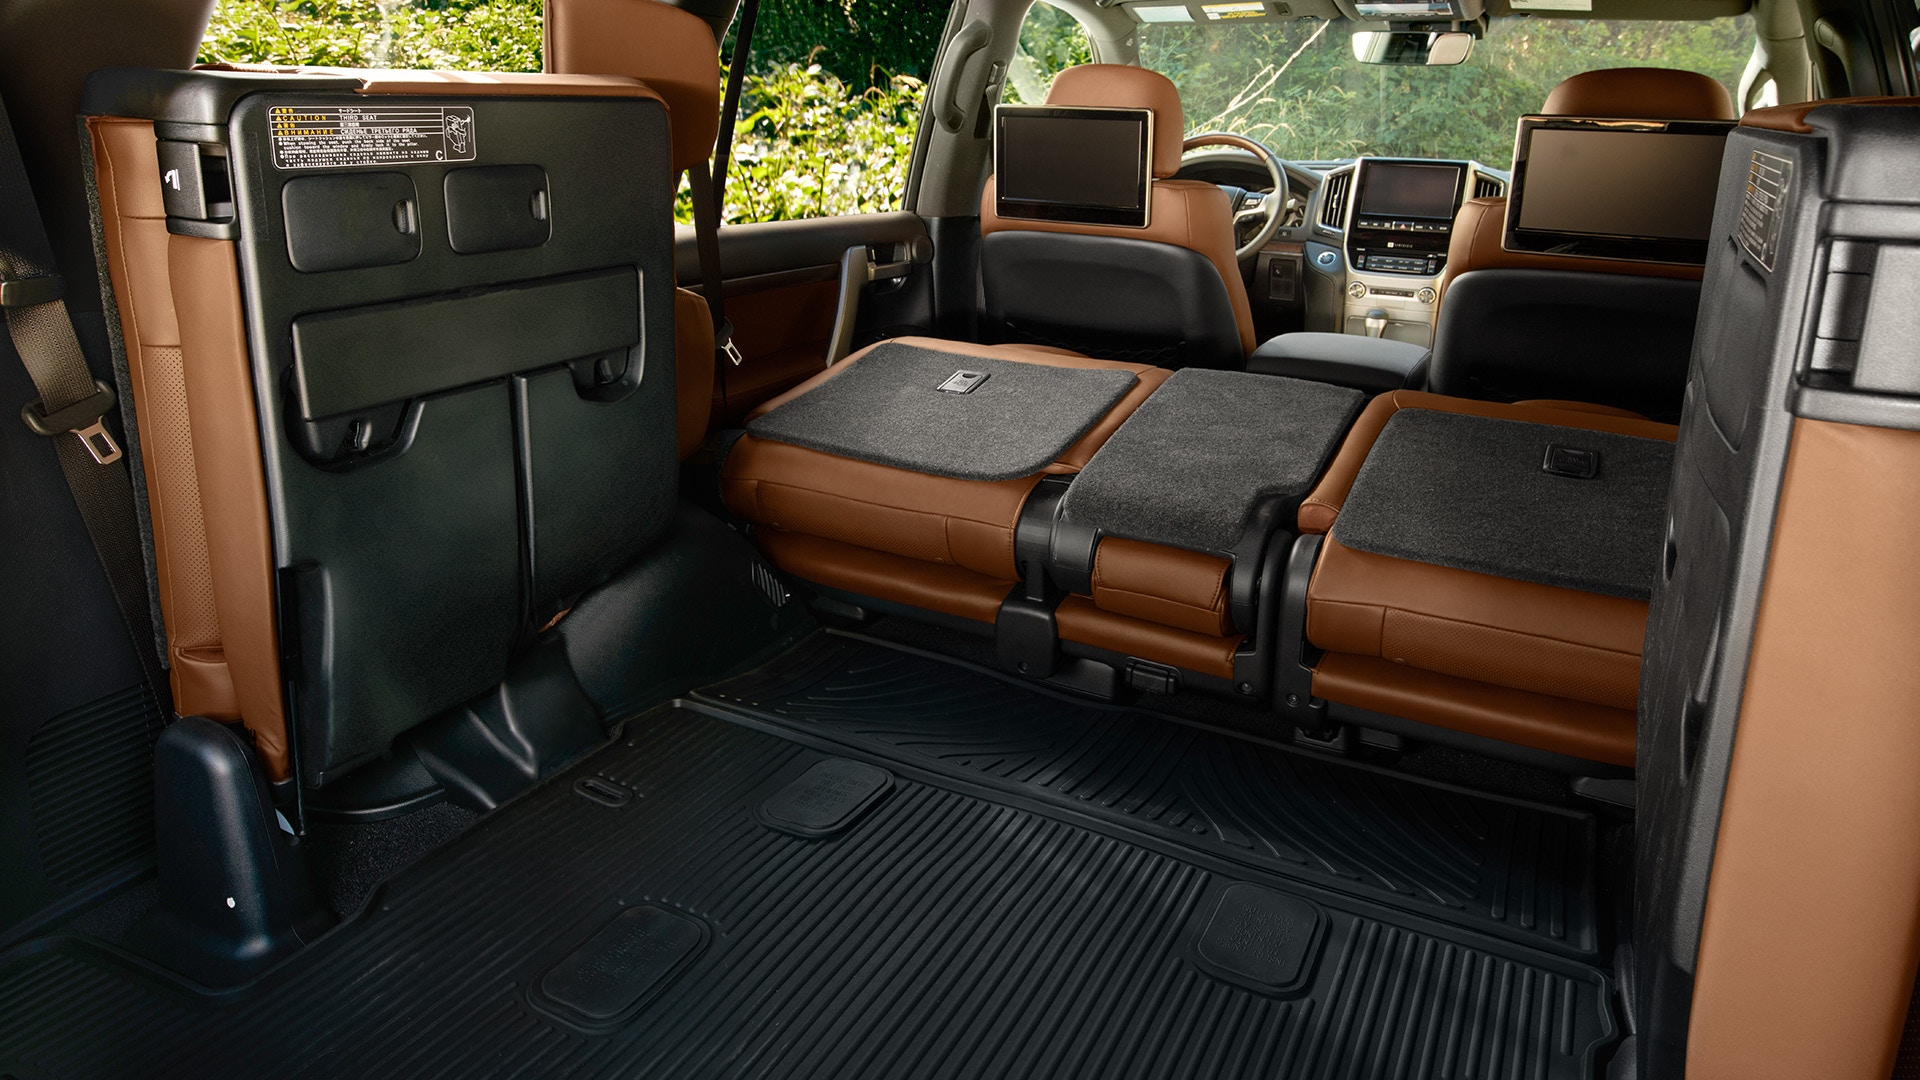 2019 Toyota Land Cruiser Seating Configurations